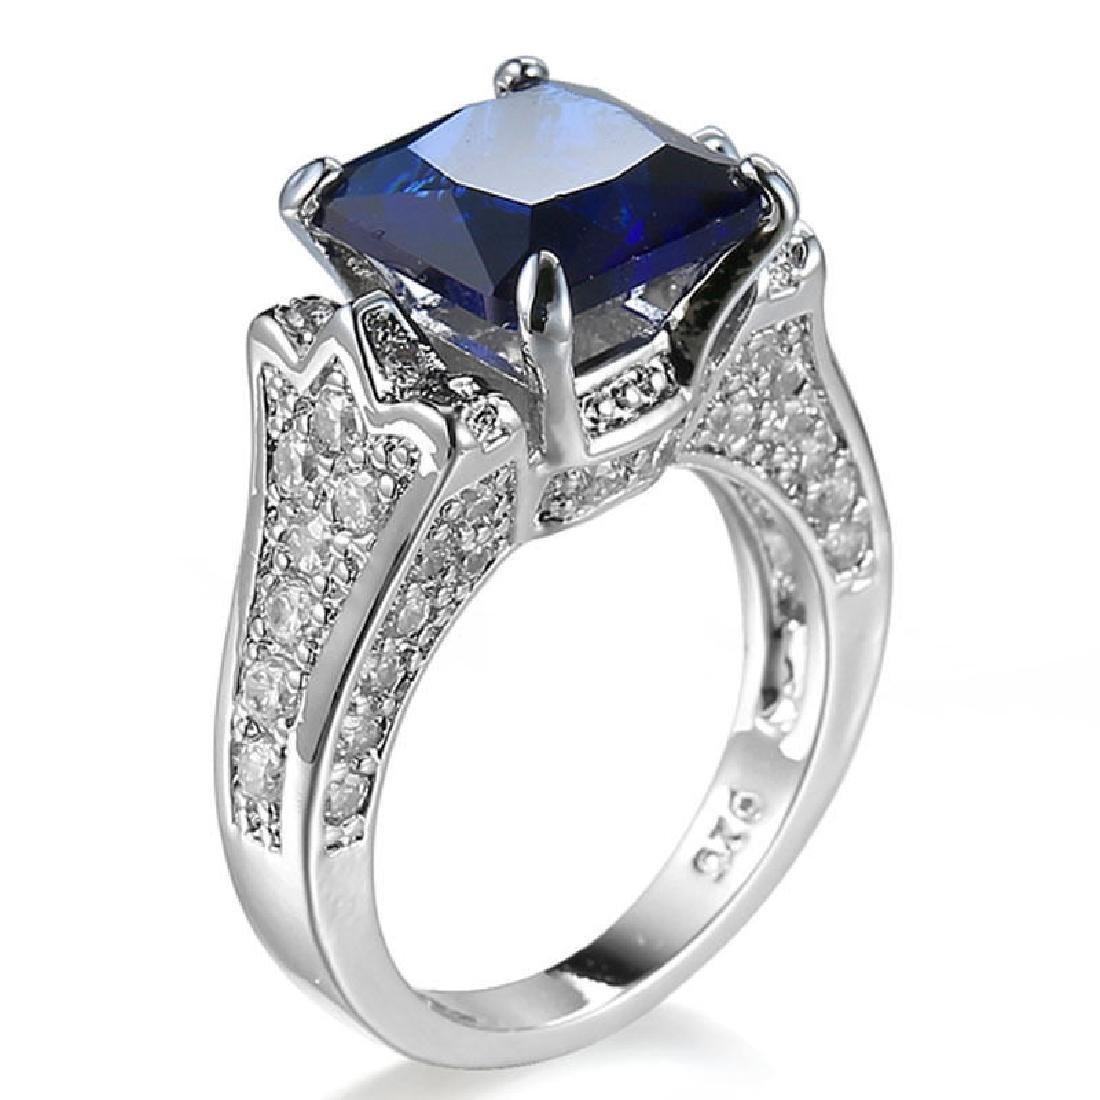 925 Solid Silver Blue Sapphire CZ Ring Wedding Size 9 - 2